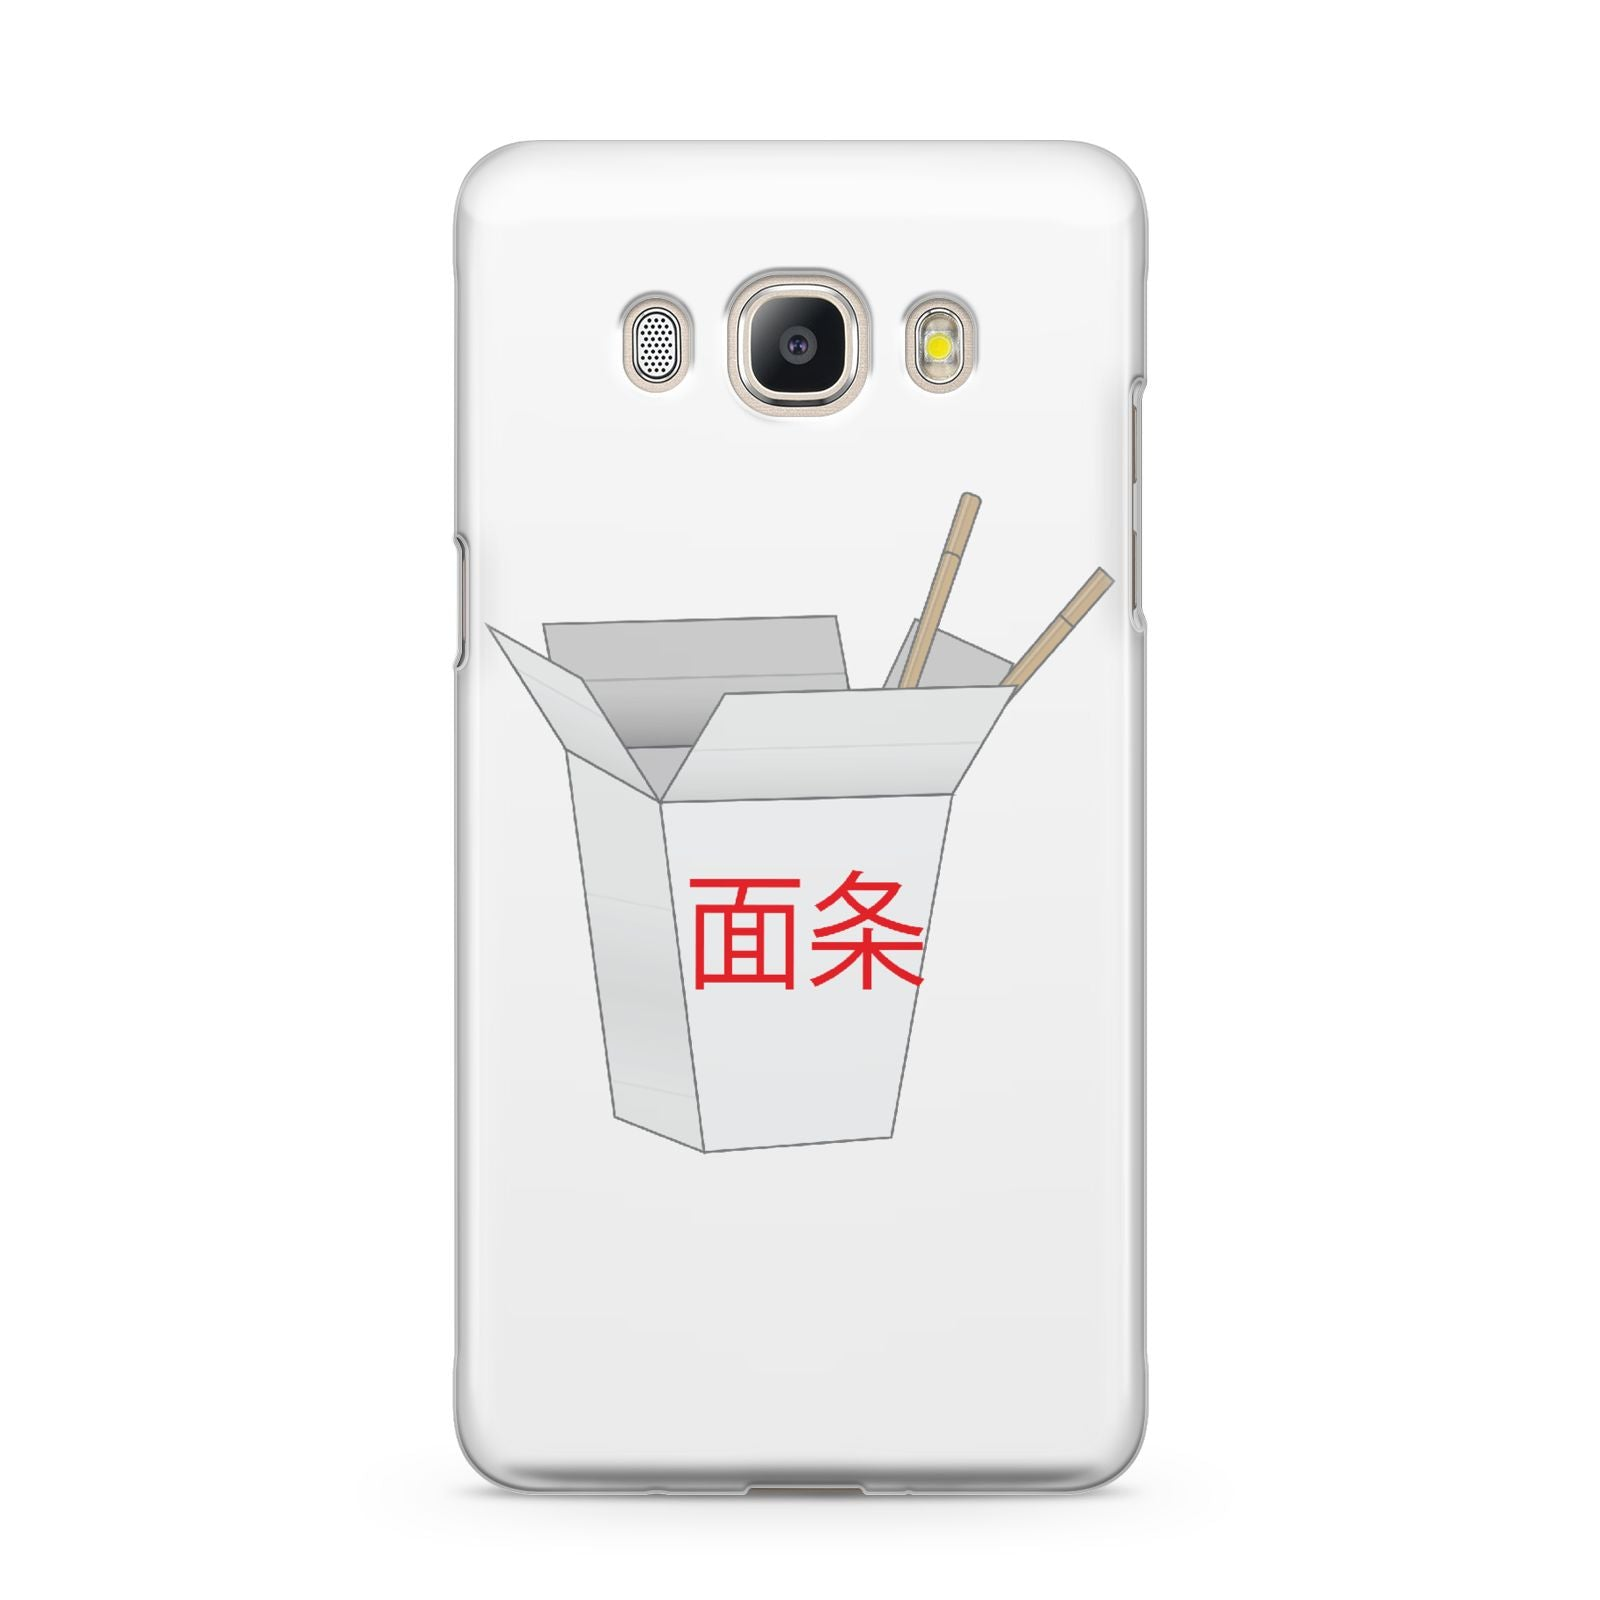 Chinese Takeaway Box Samsung Galaxy J5 2016 Case